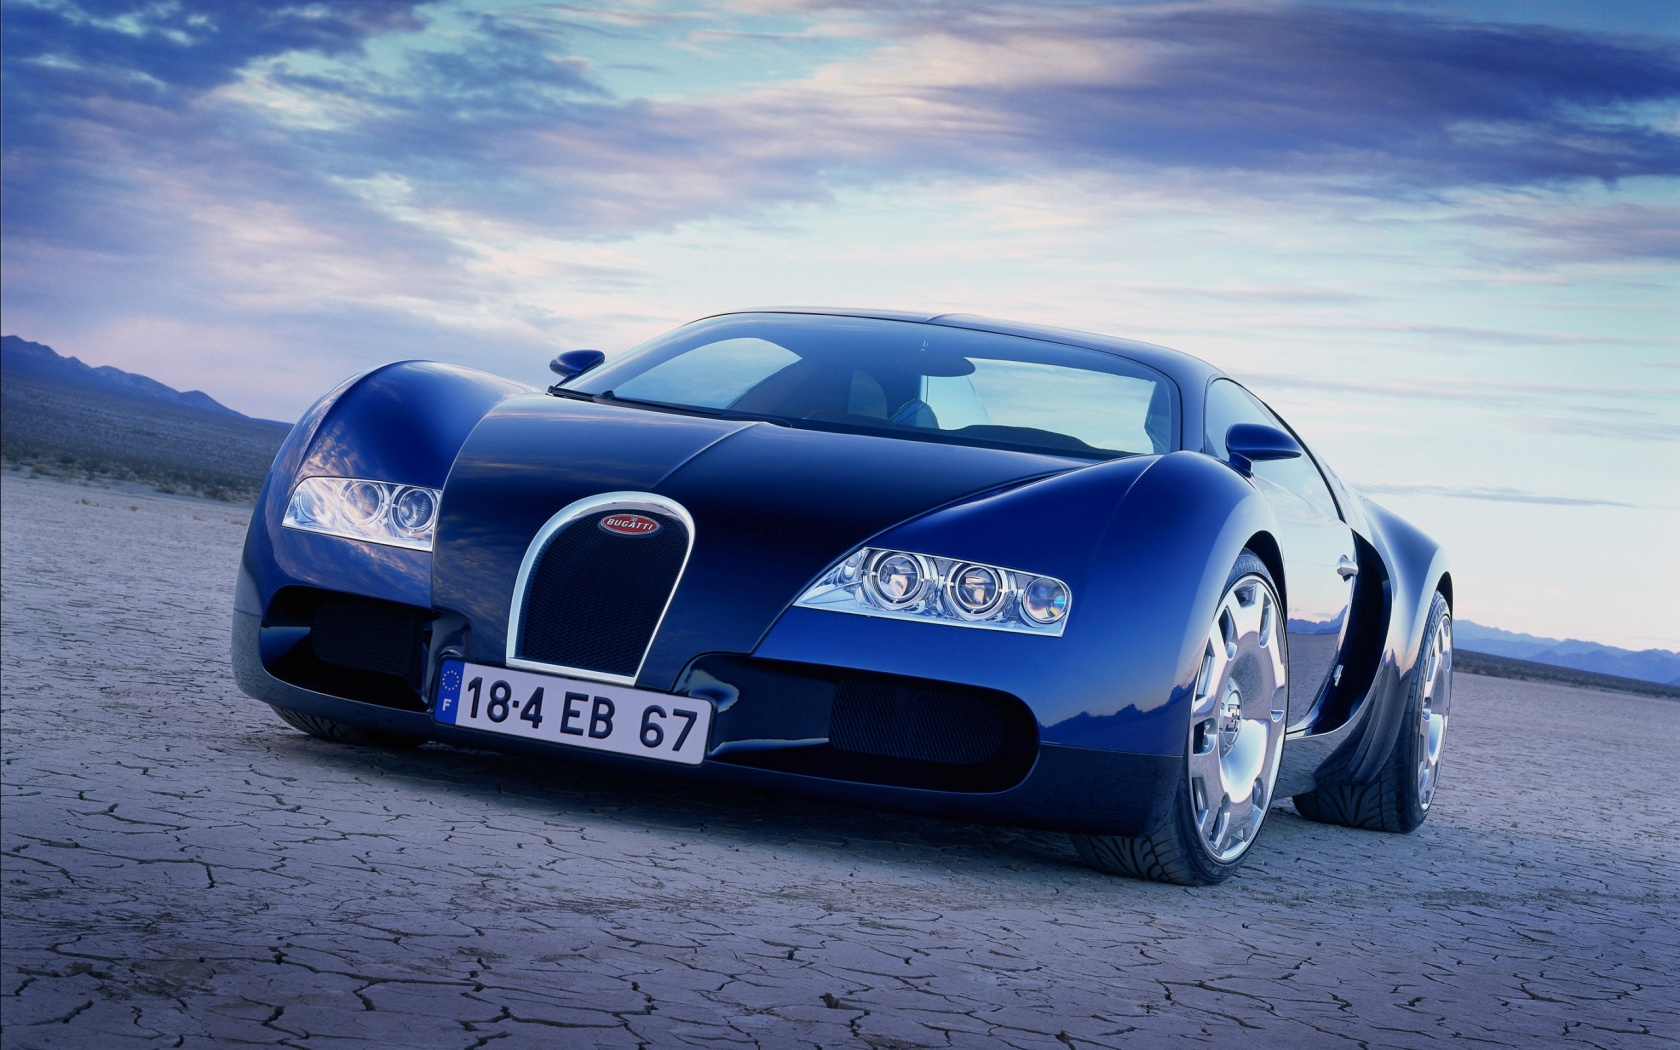 Bugatti Veyron EB 184 Retromobil 2014 Wallpapers 1680x1050